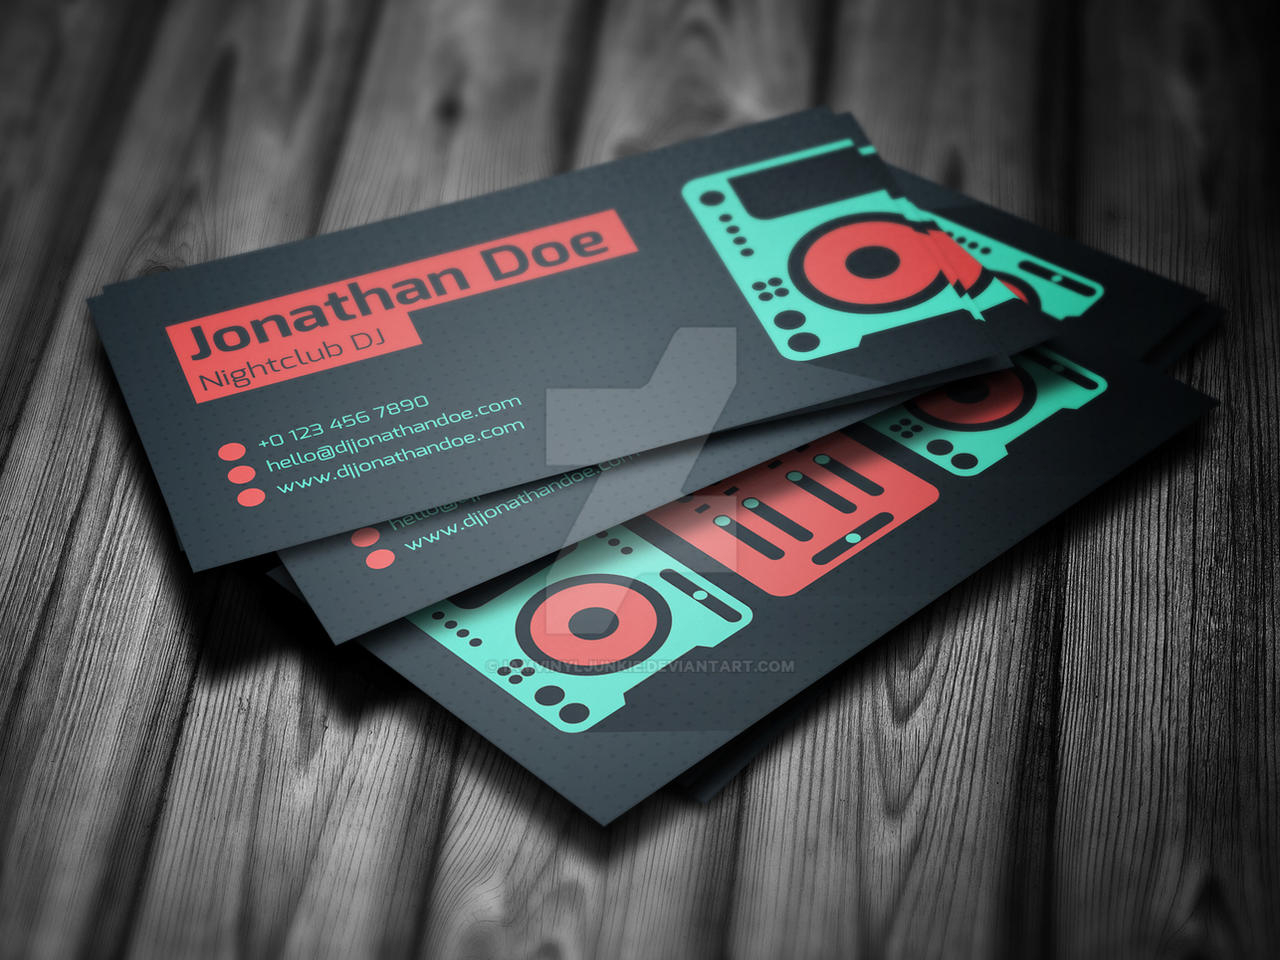 Flat producer dj business card psd template by iamvinyljunkie flat dj business card psd template by iamvinyljunkie reheart Images